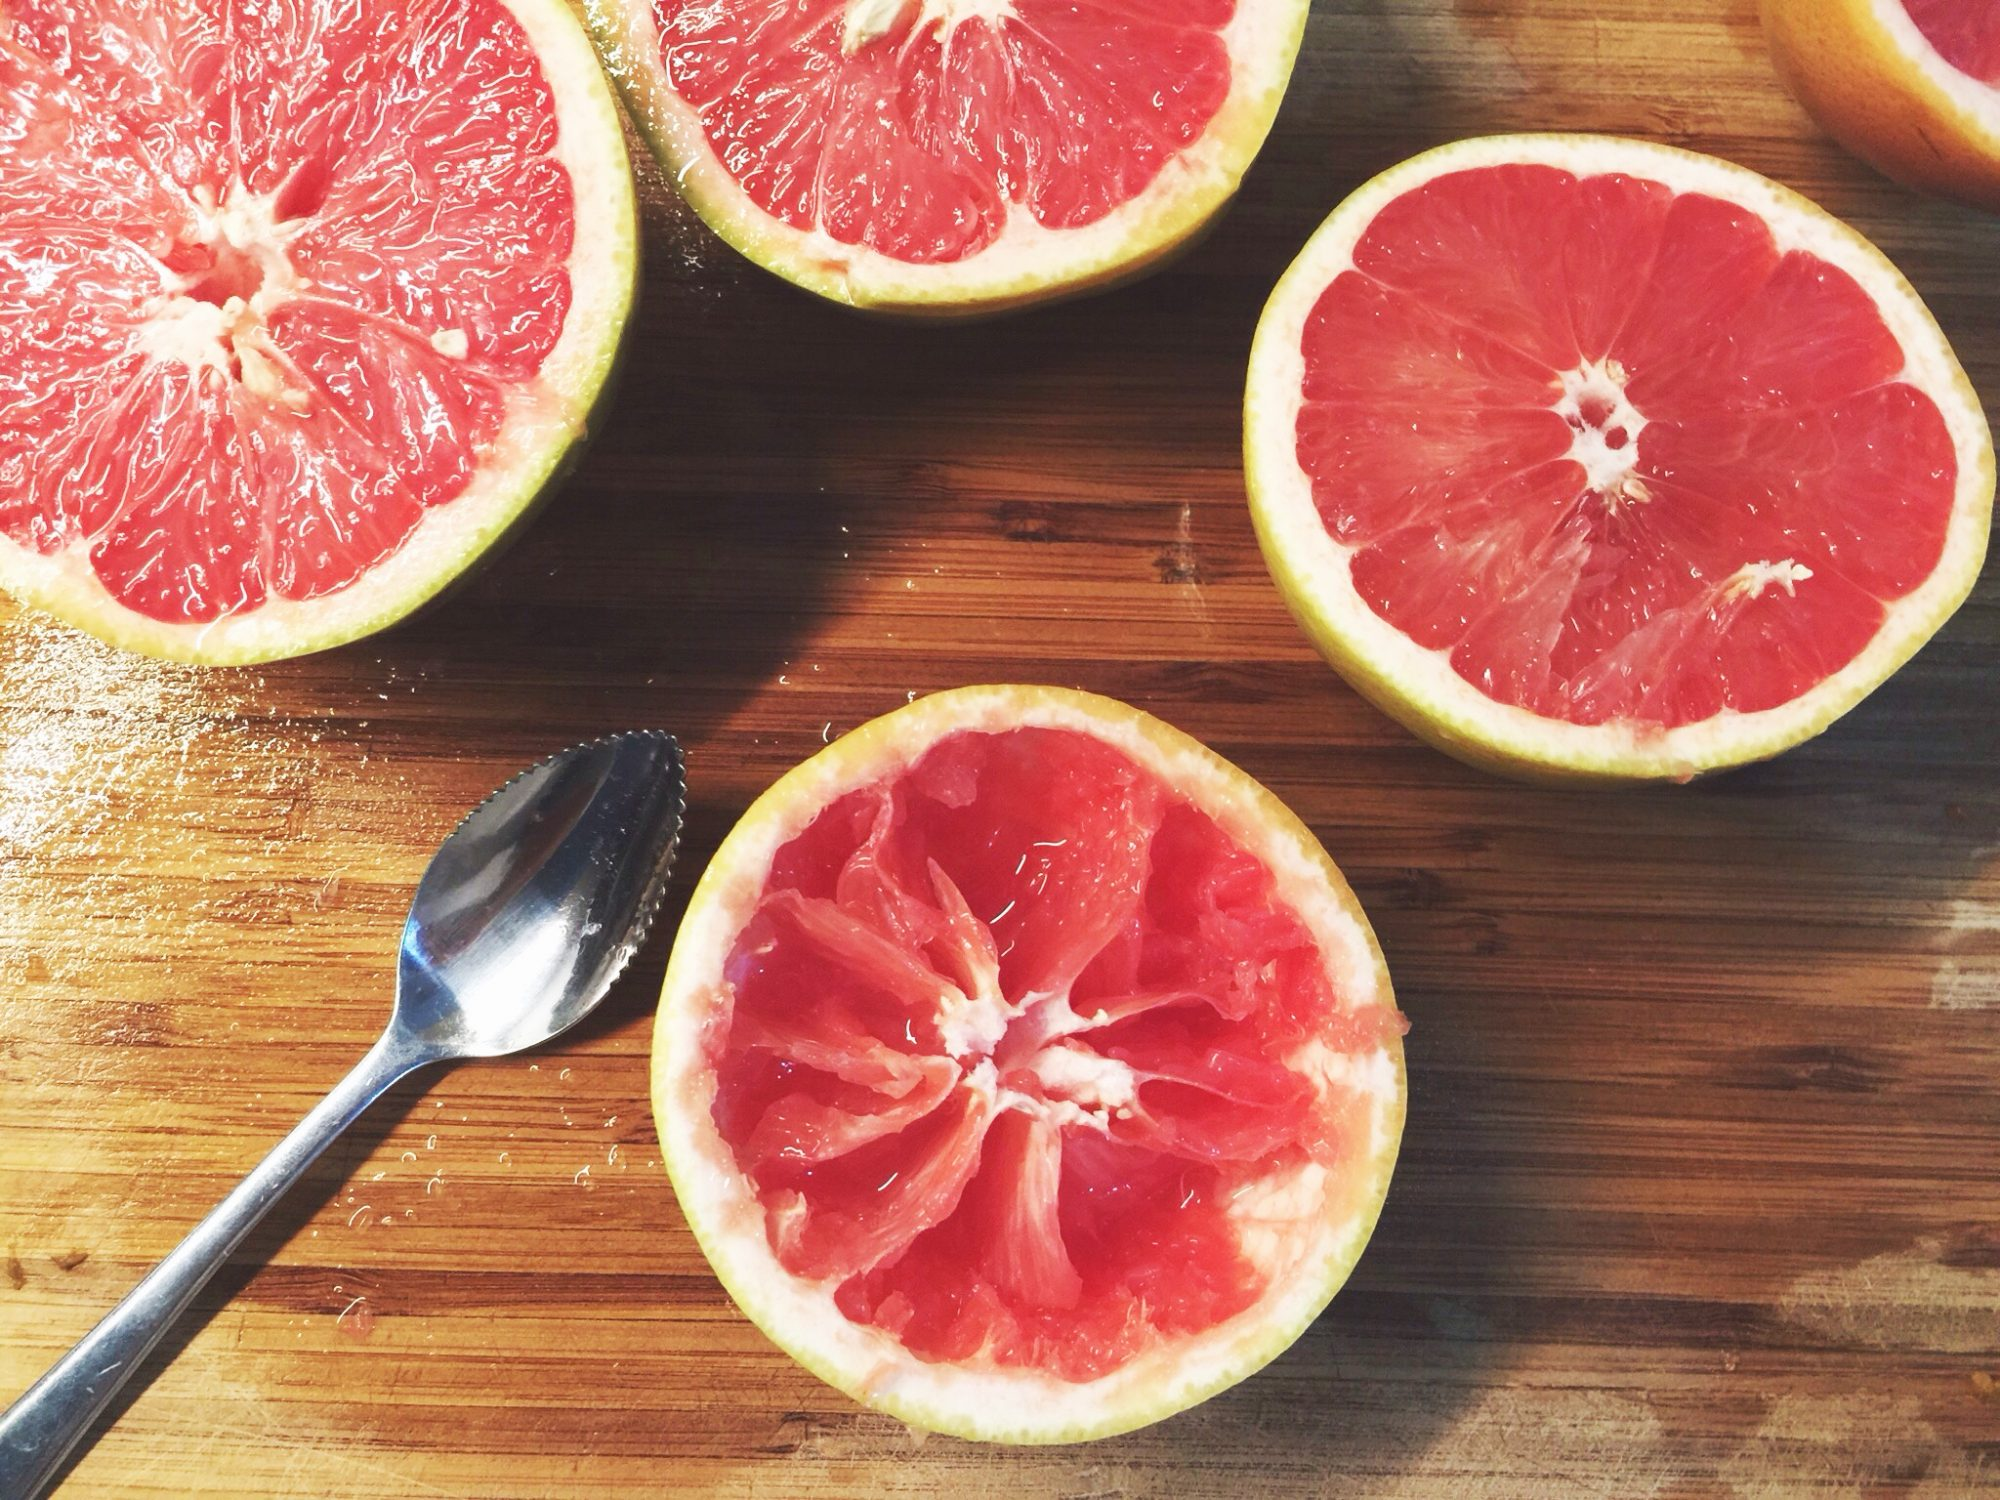 Halved Pink Grapefruit On Table